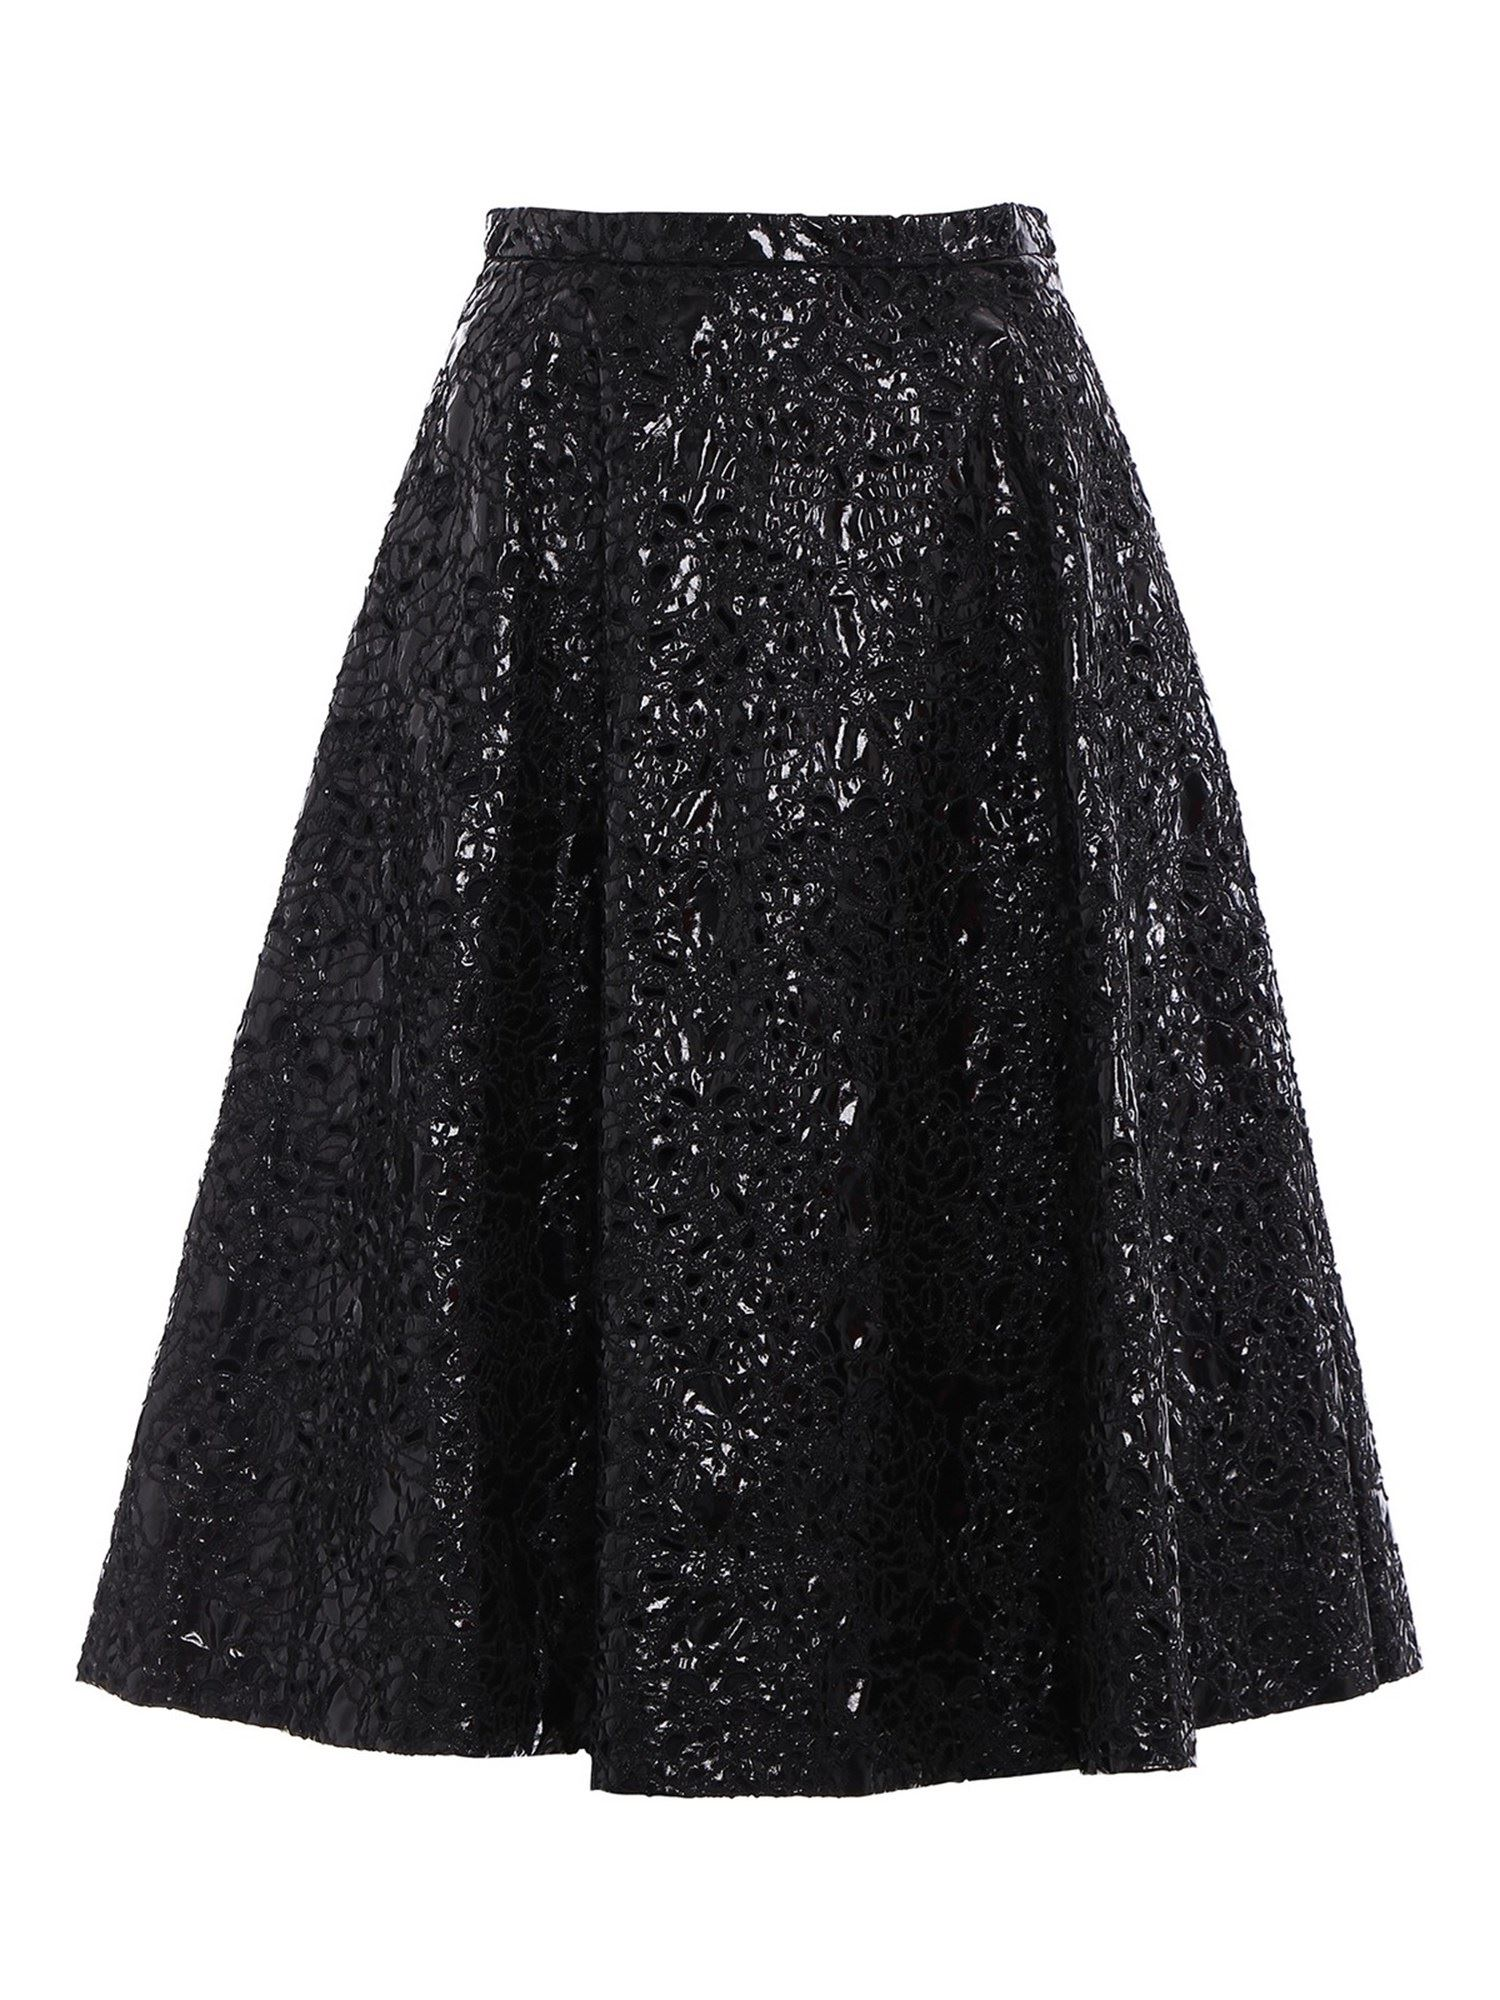 N°21 EMBROIDERED PATENT EFFECT SKIRT IN BLACK